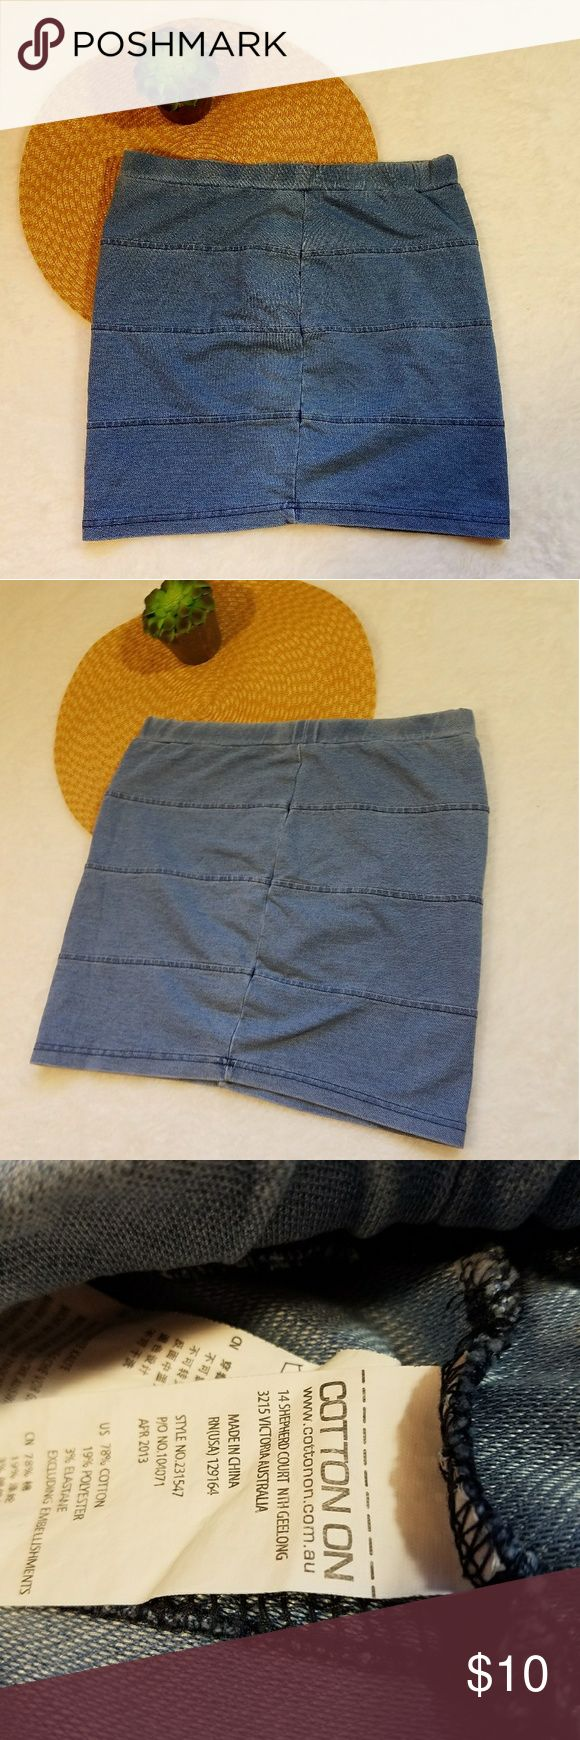 Cotton On Short Denim Jean Mini Skirt Size Small ~Cotton On Short Denim Jean Mini Skirt  ~Size Small  ~Measurements: *Measurements are Approximate* ~Gently Used | In Good Condition | No Rips Or Stains  ~Feel free to ask Questions and Make an Offer  ~Stock#: Cotton On Skirts Mini